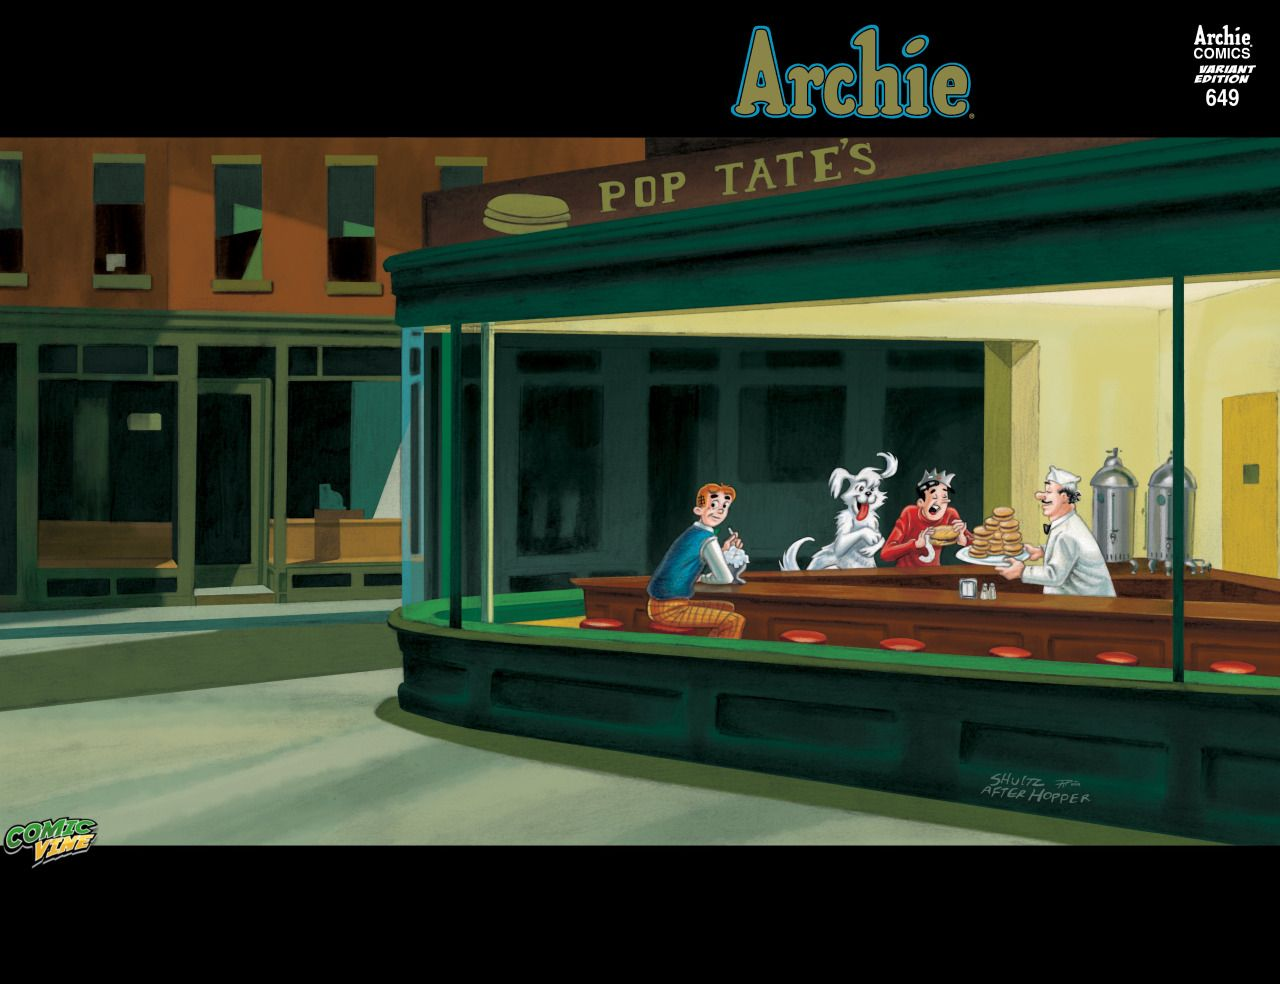 painting nighthawks by edward hopper essay This essay by mark strand was originally written for the new york review of books as a review of the exhibition of edward hopper's as in nighthawks.